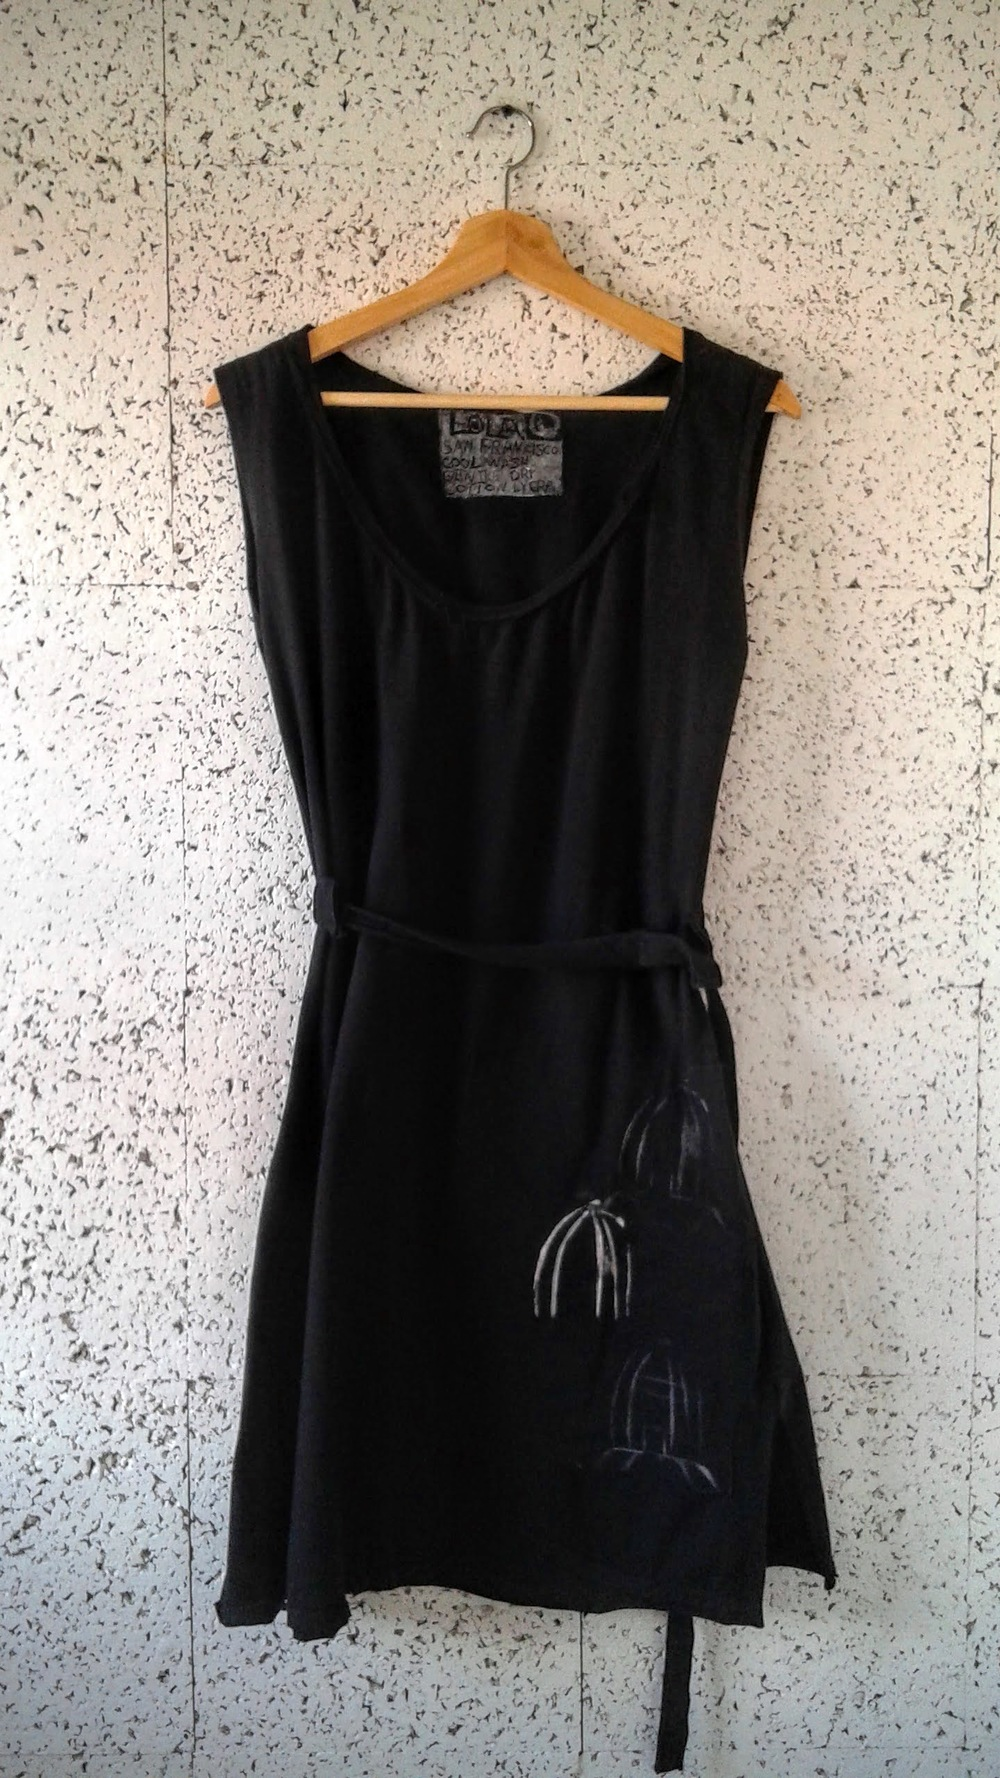 Lola of San Francisco dress; Size M, $30